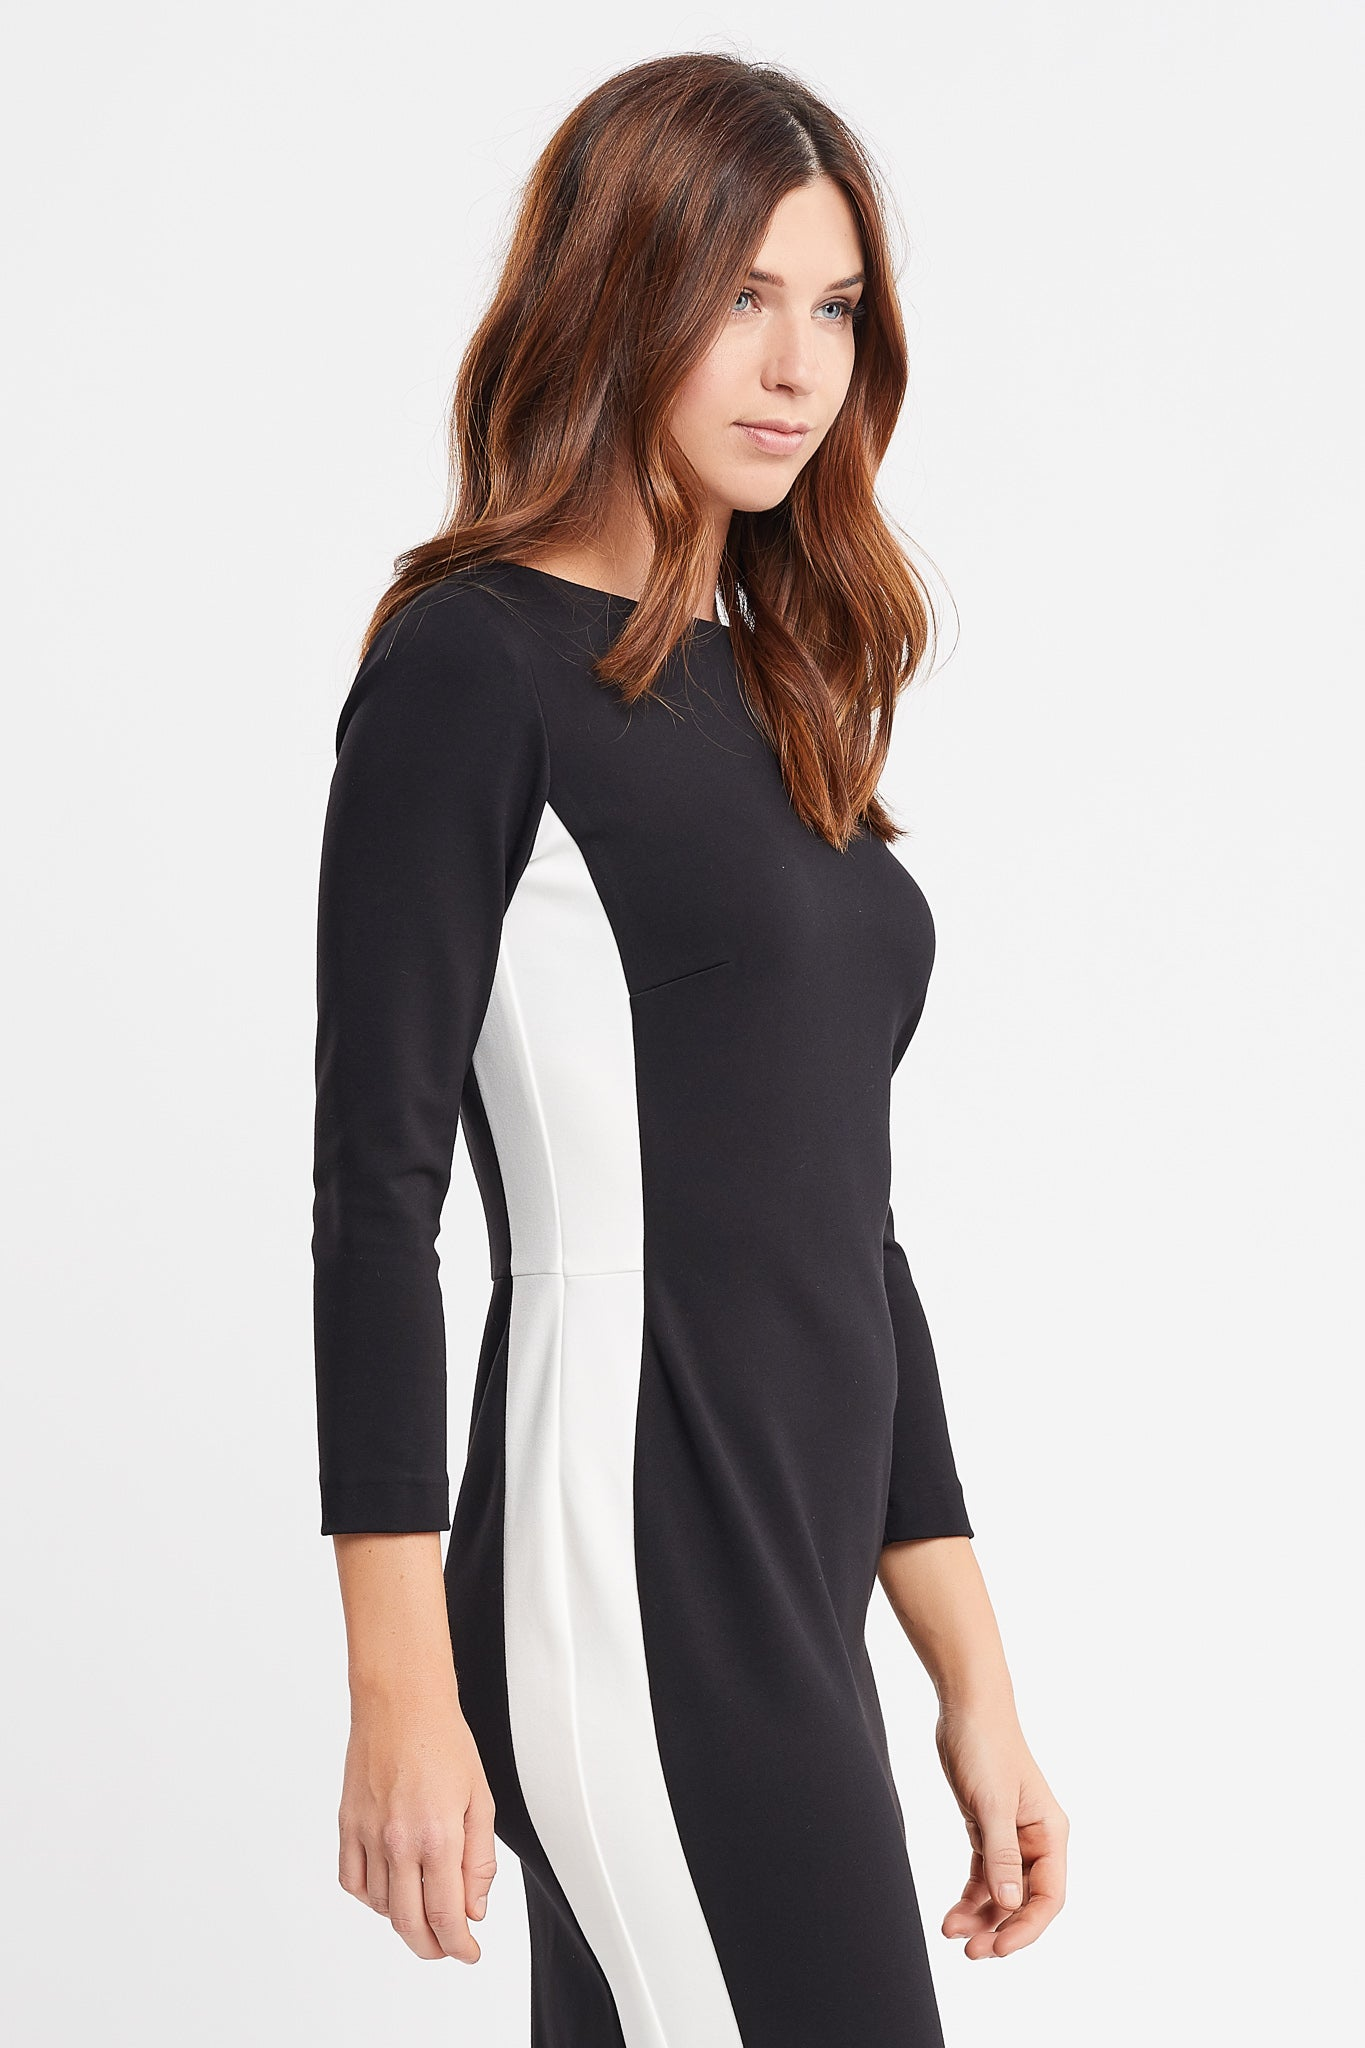 Marcella 3/4 Sleeve Sheath Black and White Work Dress